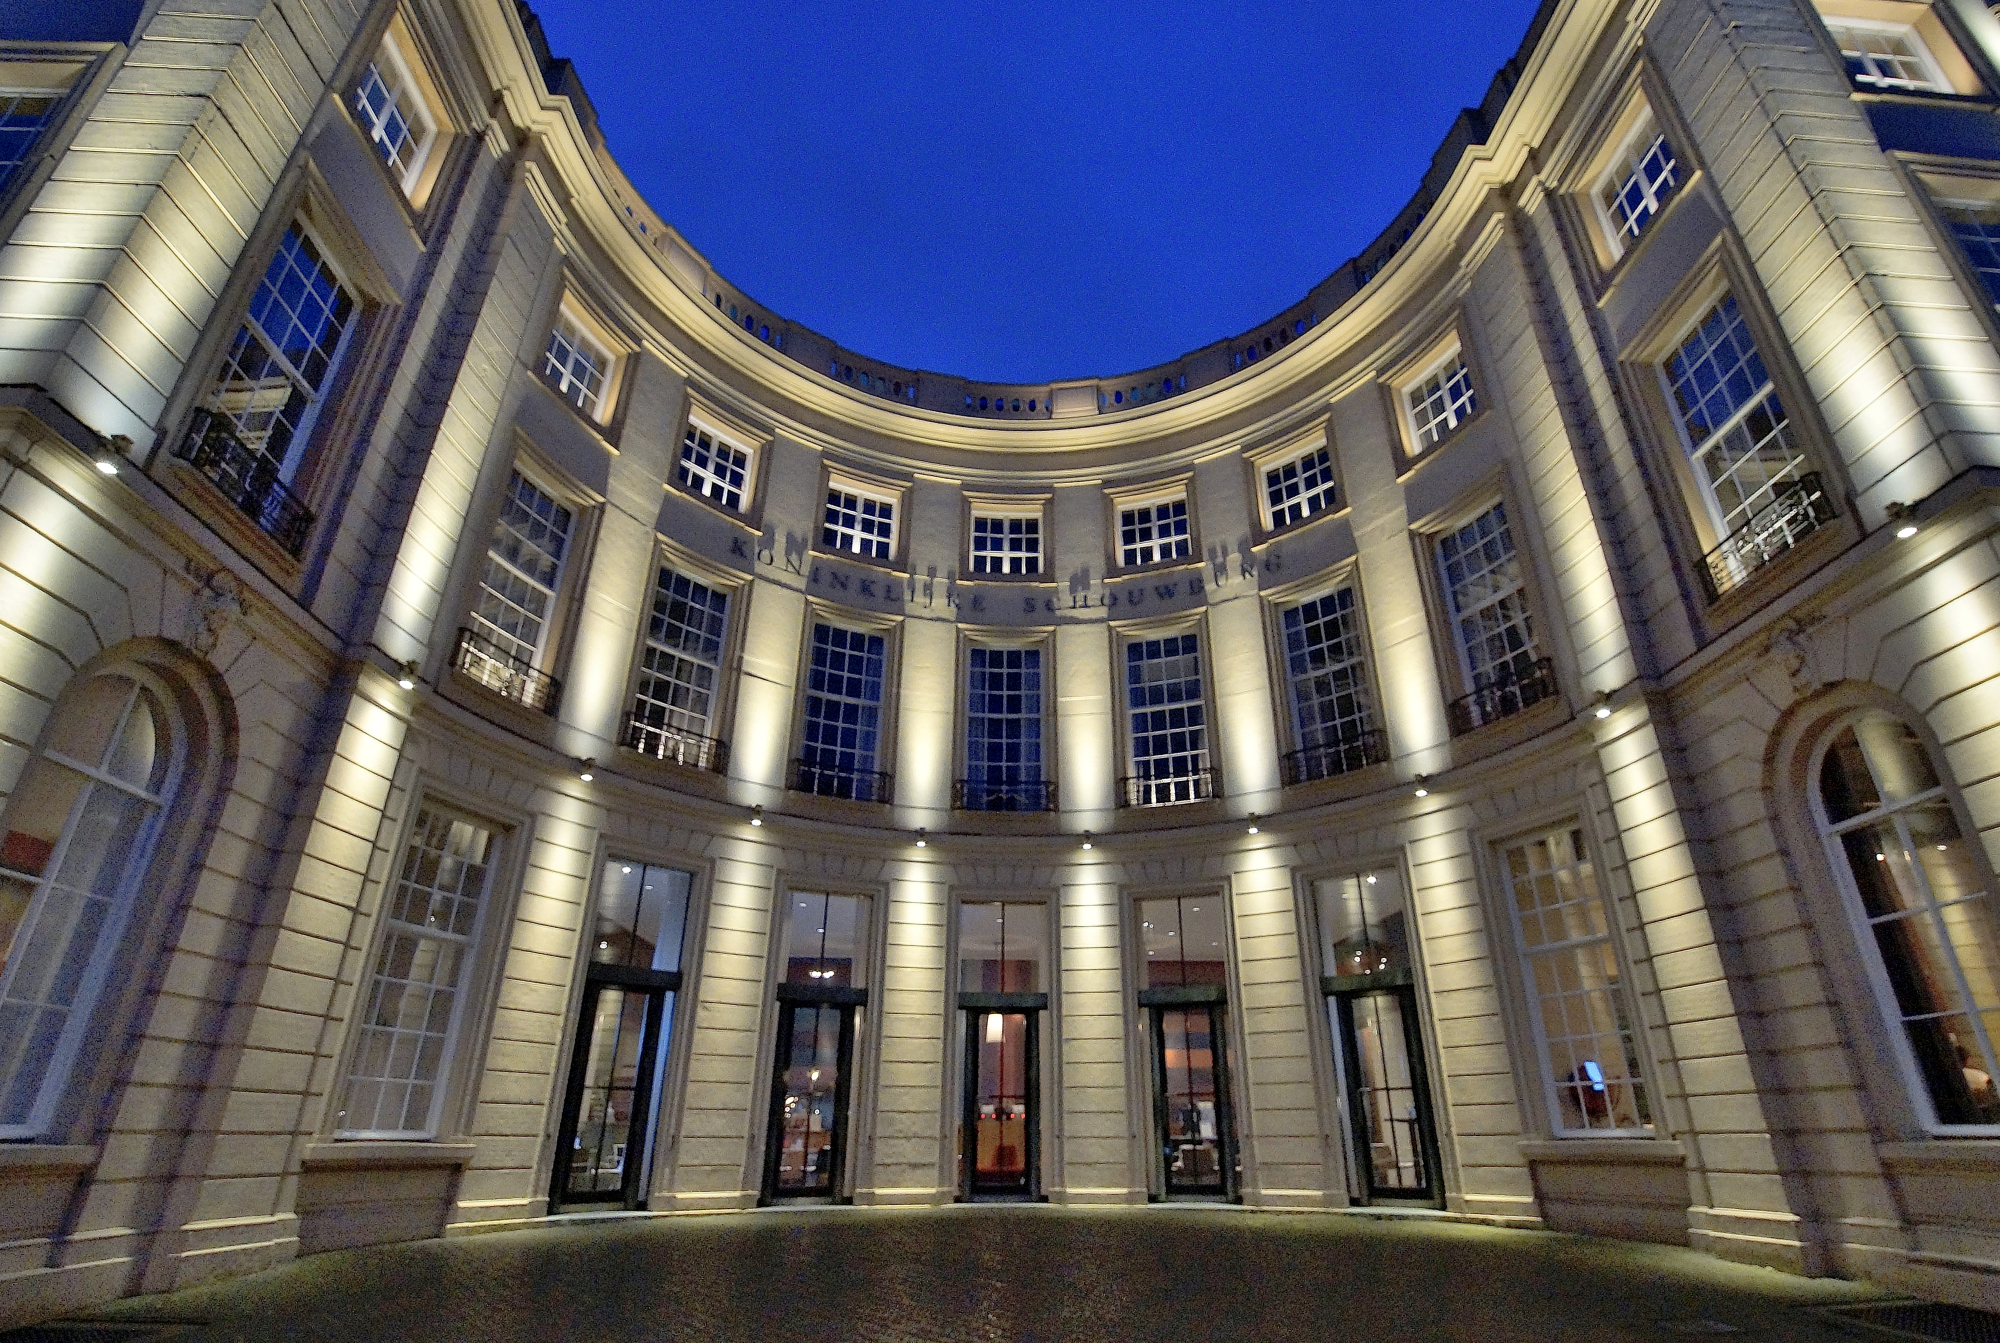 National Theatre (Royal Theatre), The Hague, Netherlands